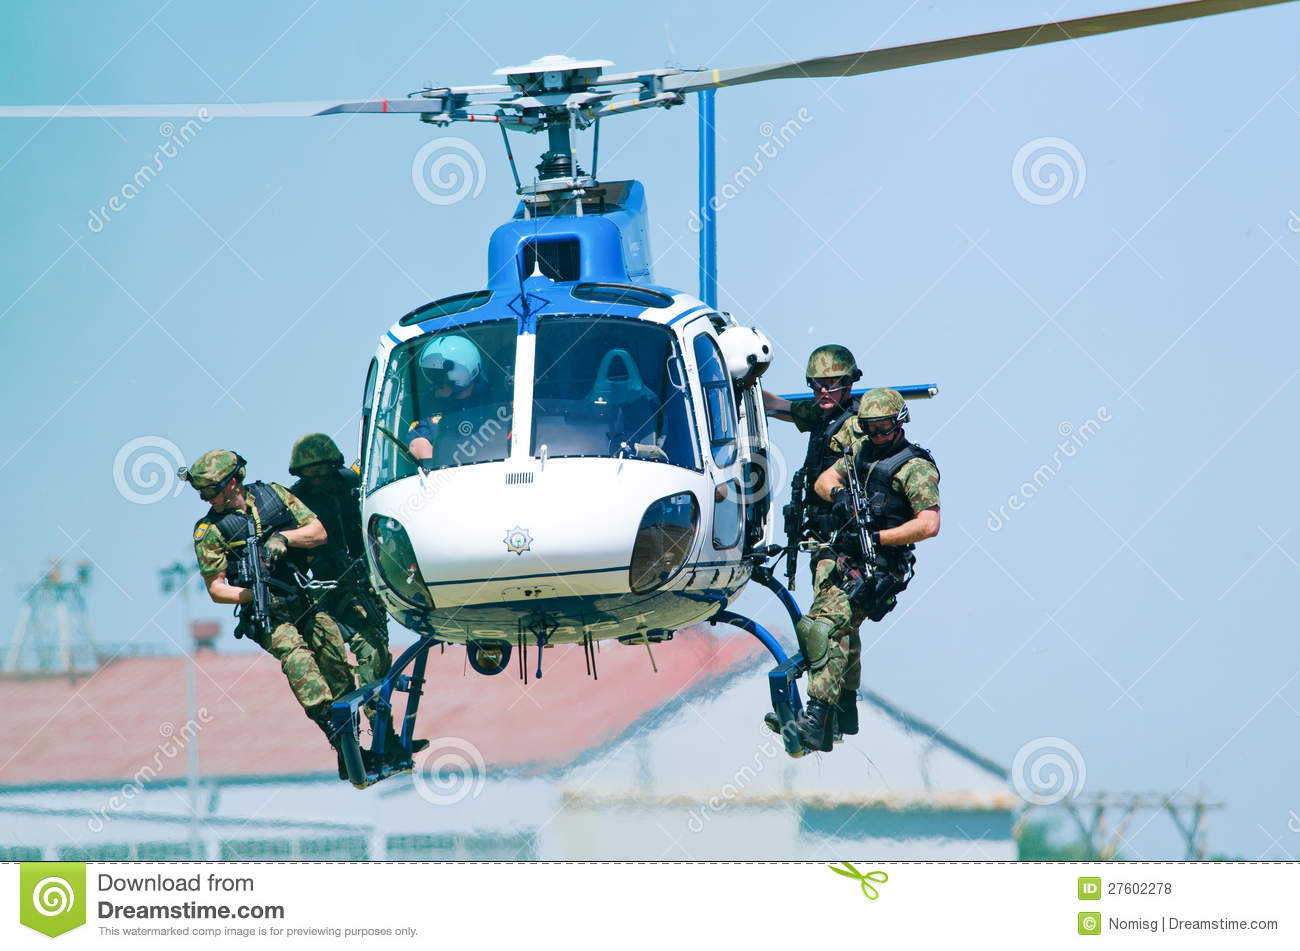 as350 helicopter with Royalty Free Stock Photos Saps Eurocopter As350 Image27602278 on 03 aug2017 Flying The Border 180963939 in addition Fsx Eurocopter As350 Ecureuil furthermore Contacts in addition Wysong  pletes Hospital Wings First Eurocopter Ec130 as well San Diego Police Air Support Unit.